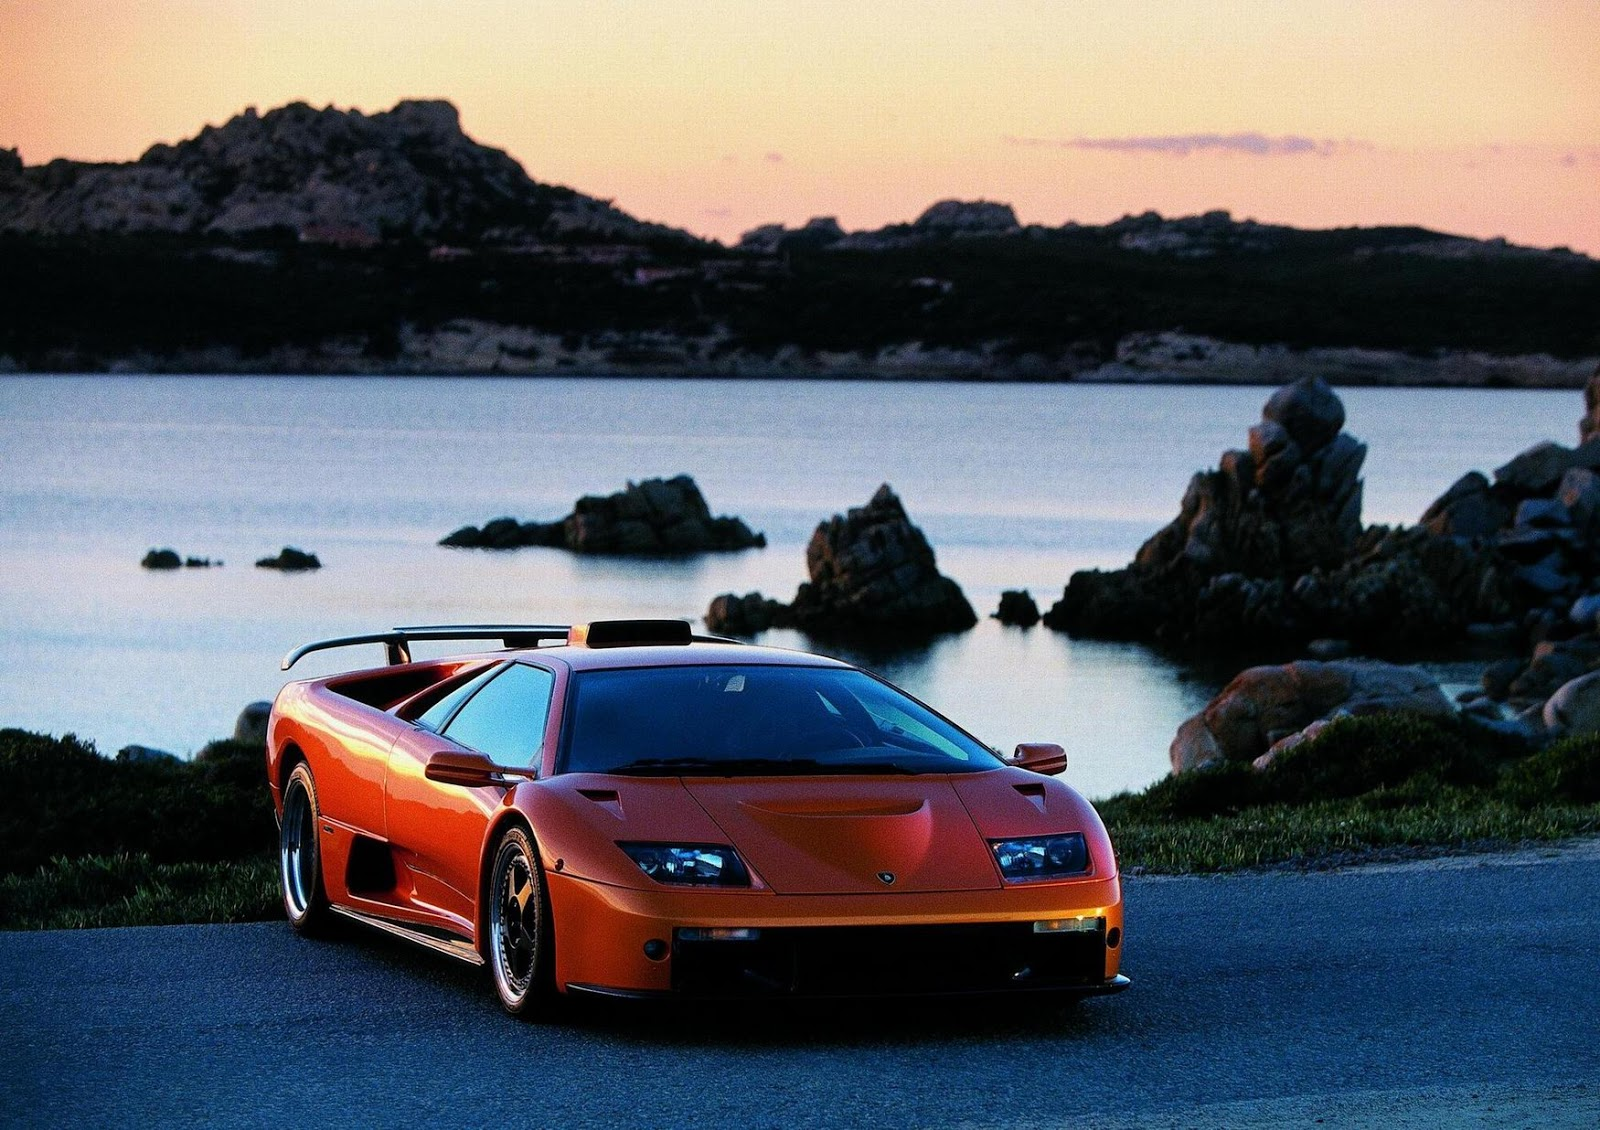 Lamborghini Diablo Gtr For Sale Car Sport